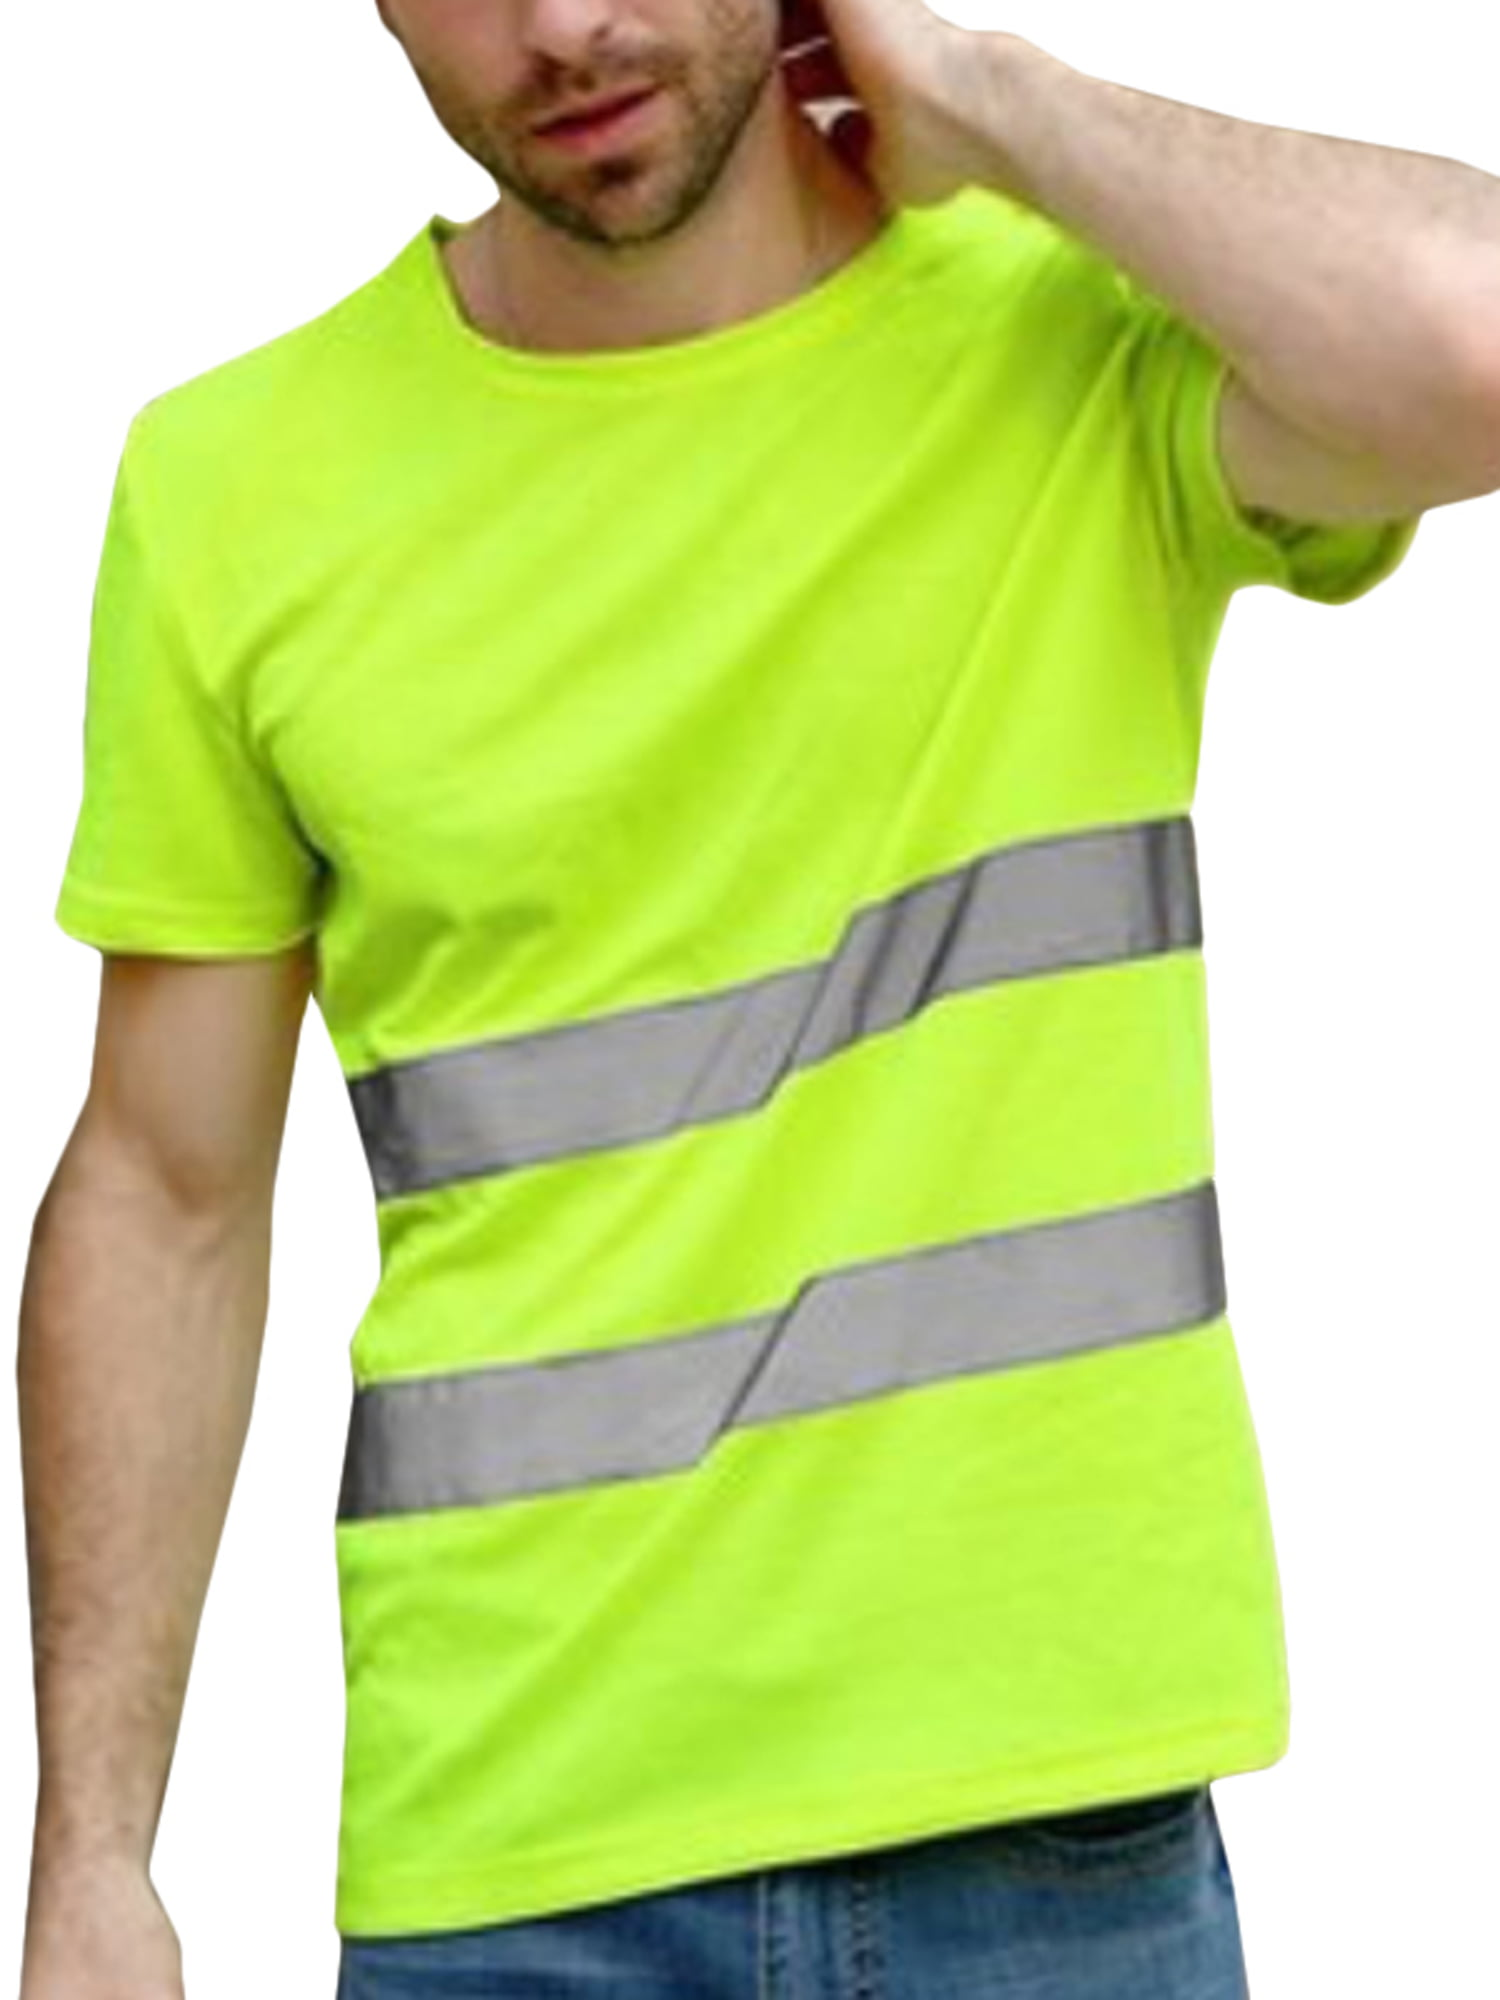 Lightweight Moisture Wicking Construction Shirts for Men /& Women 2XL, Hi Vis Yellow Non-ANSI Brite Safety Style 213 Hi Vis Long-Sleeve Safety Shirt with Pocket